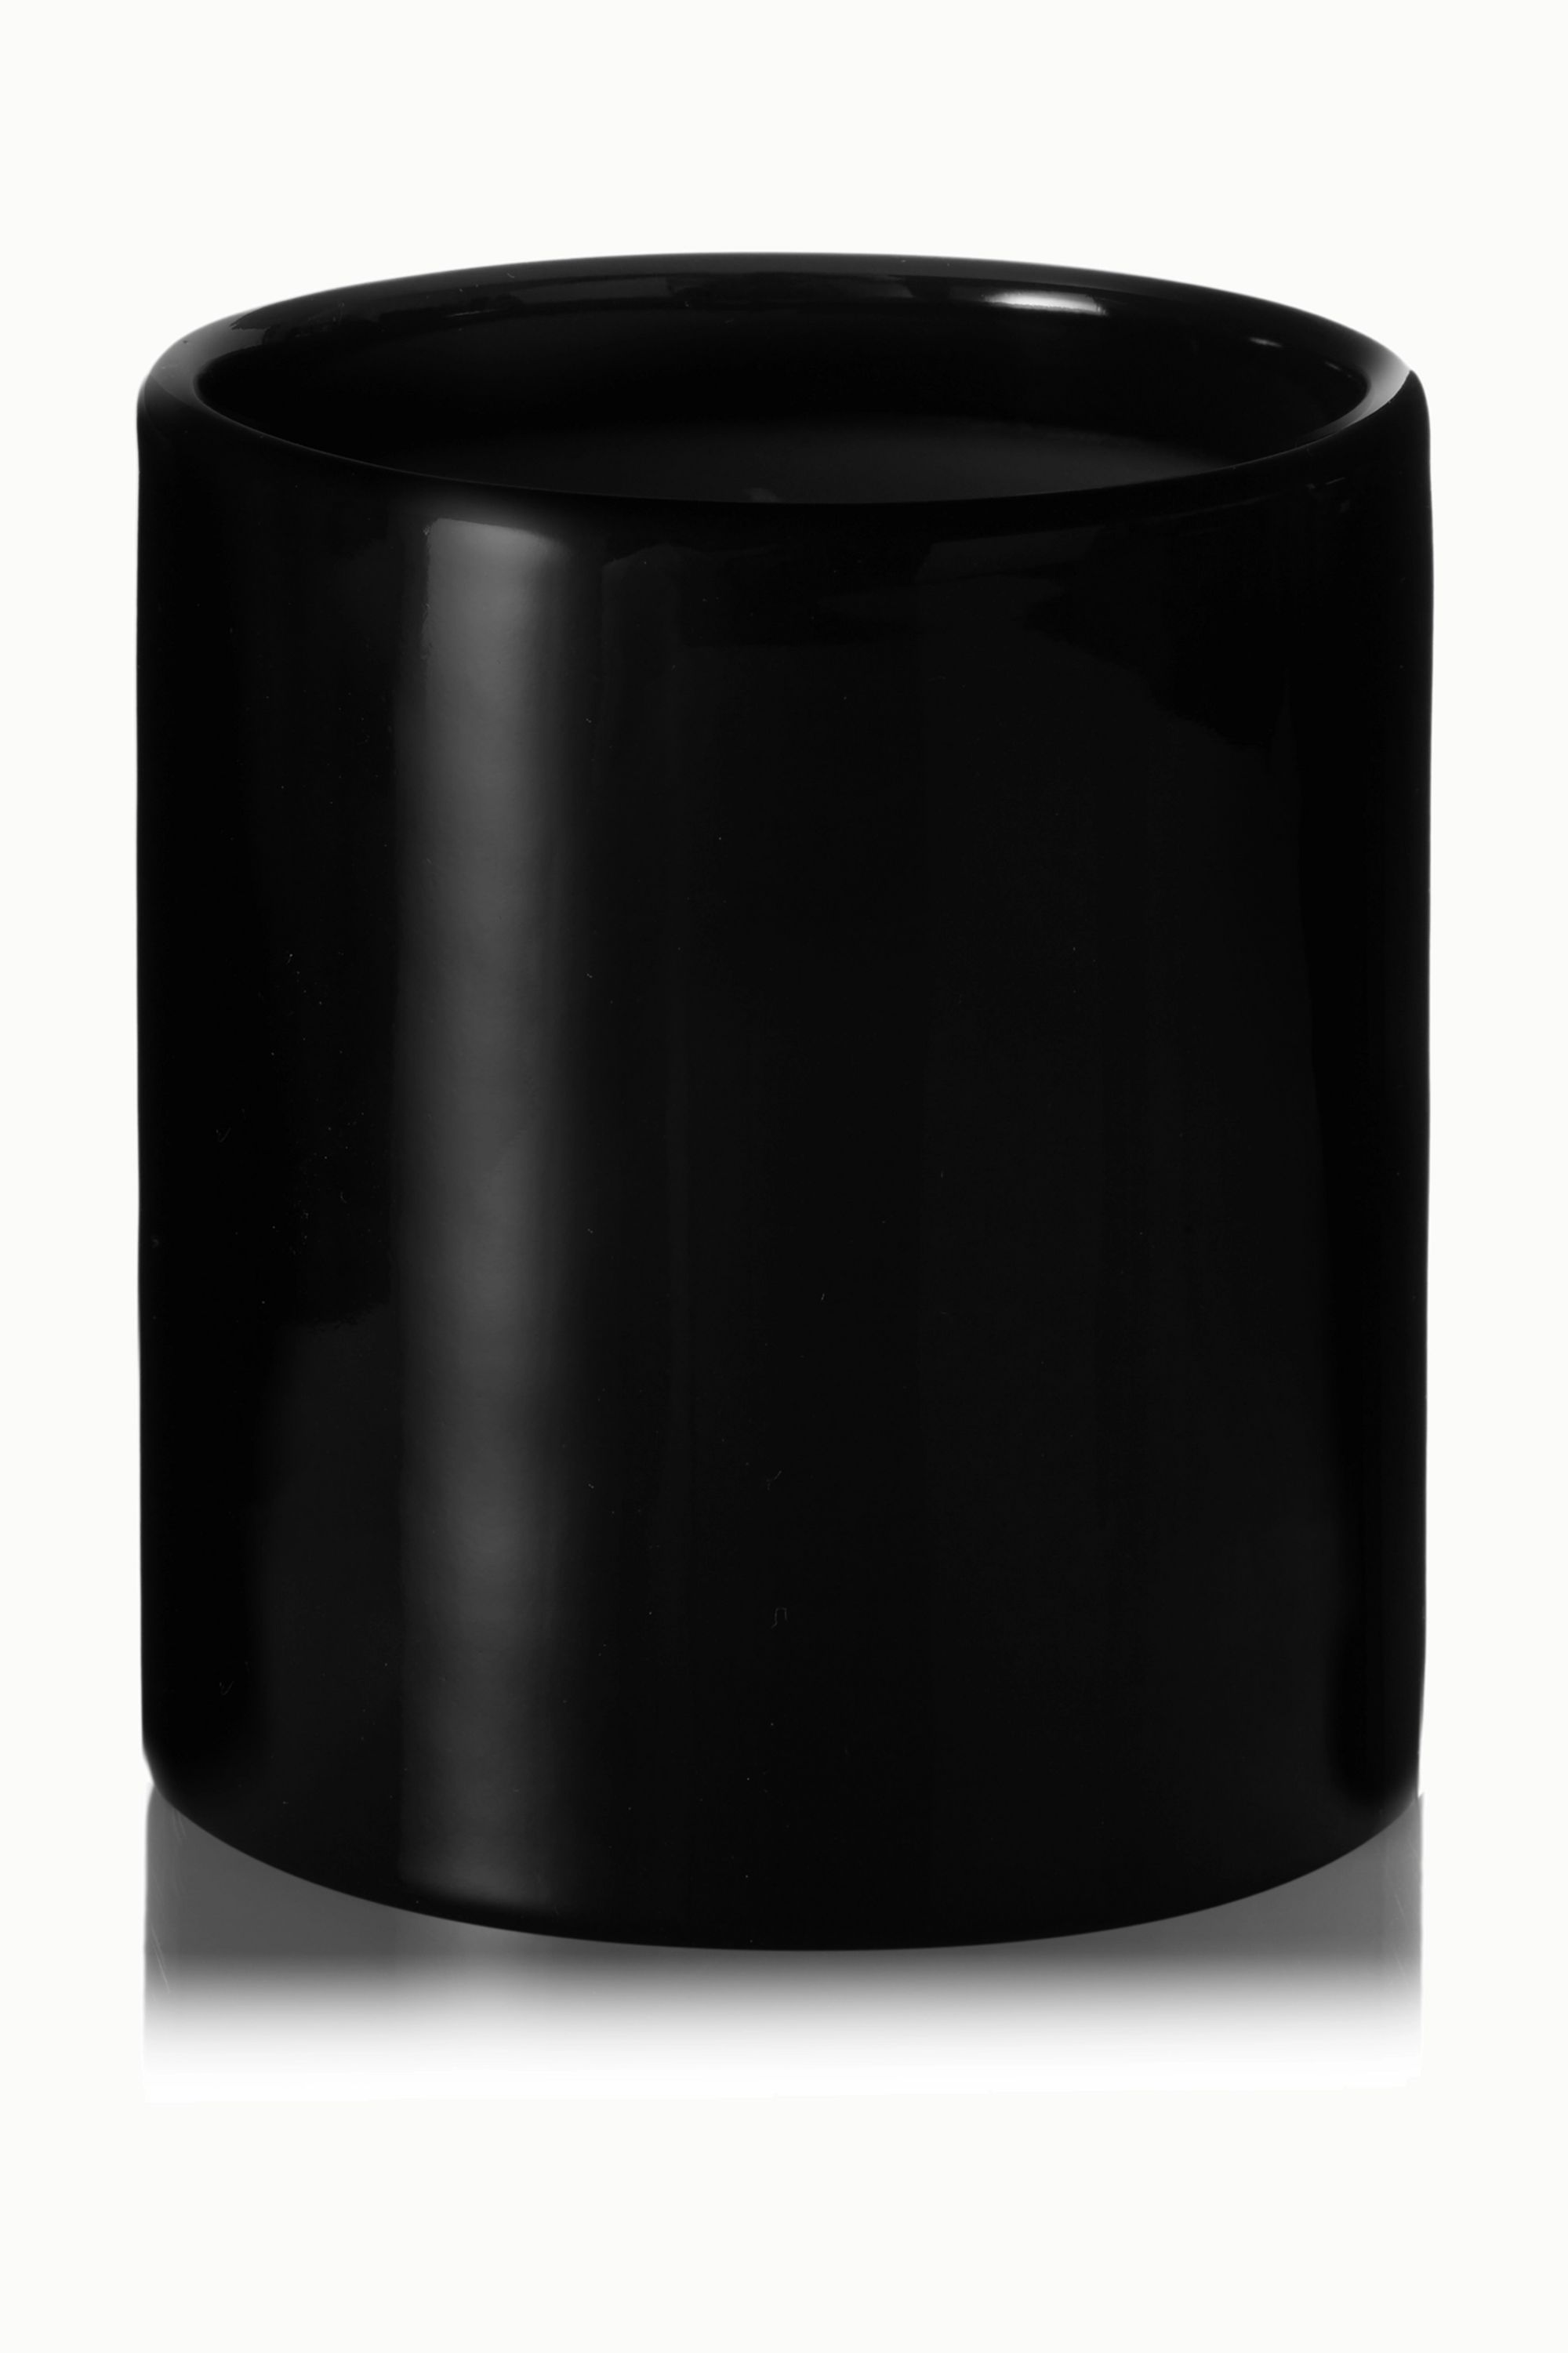 Burberry Beauty Highland Berry scented candle, 240g